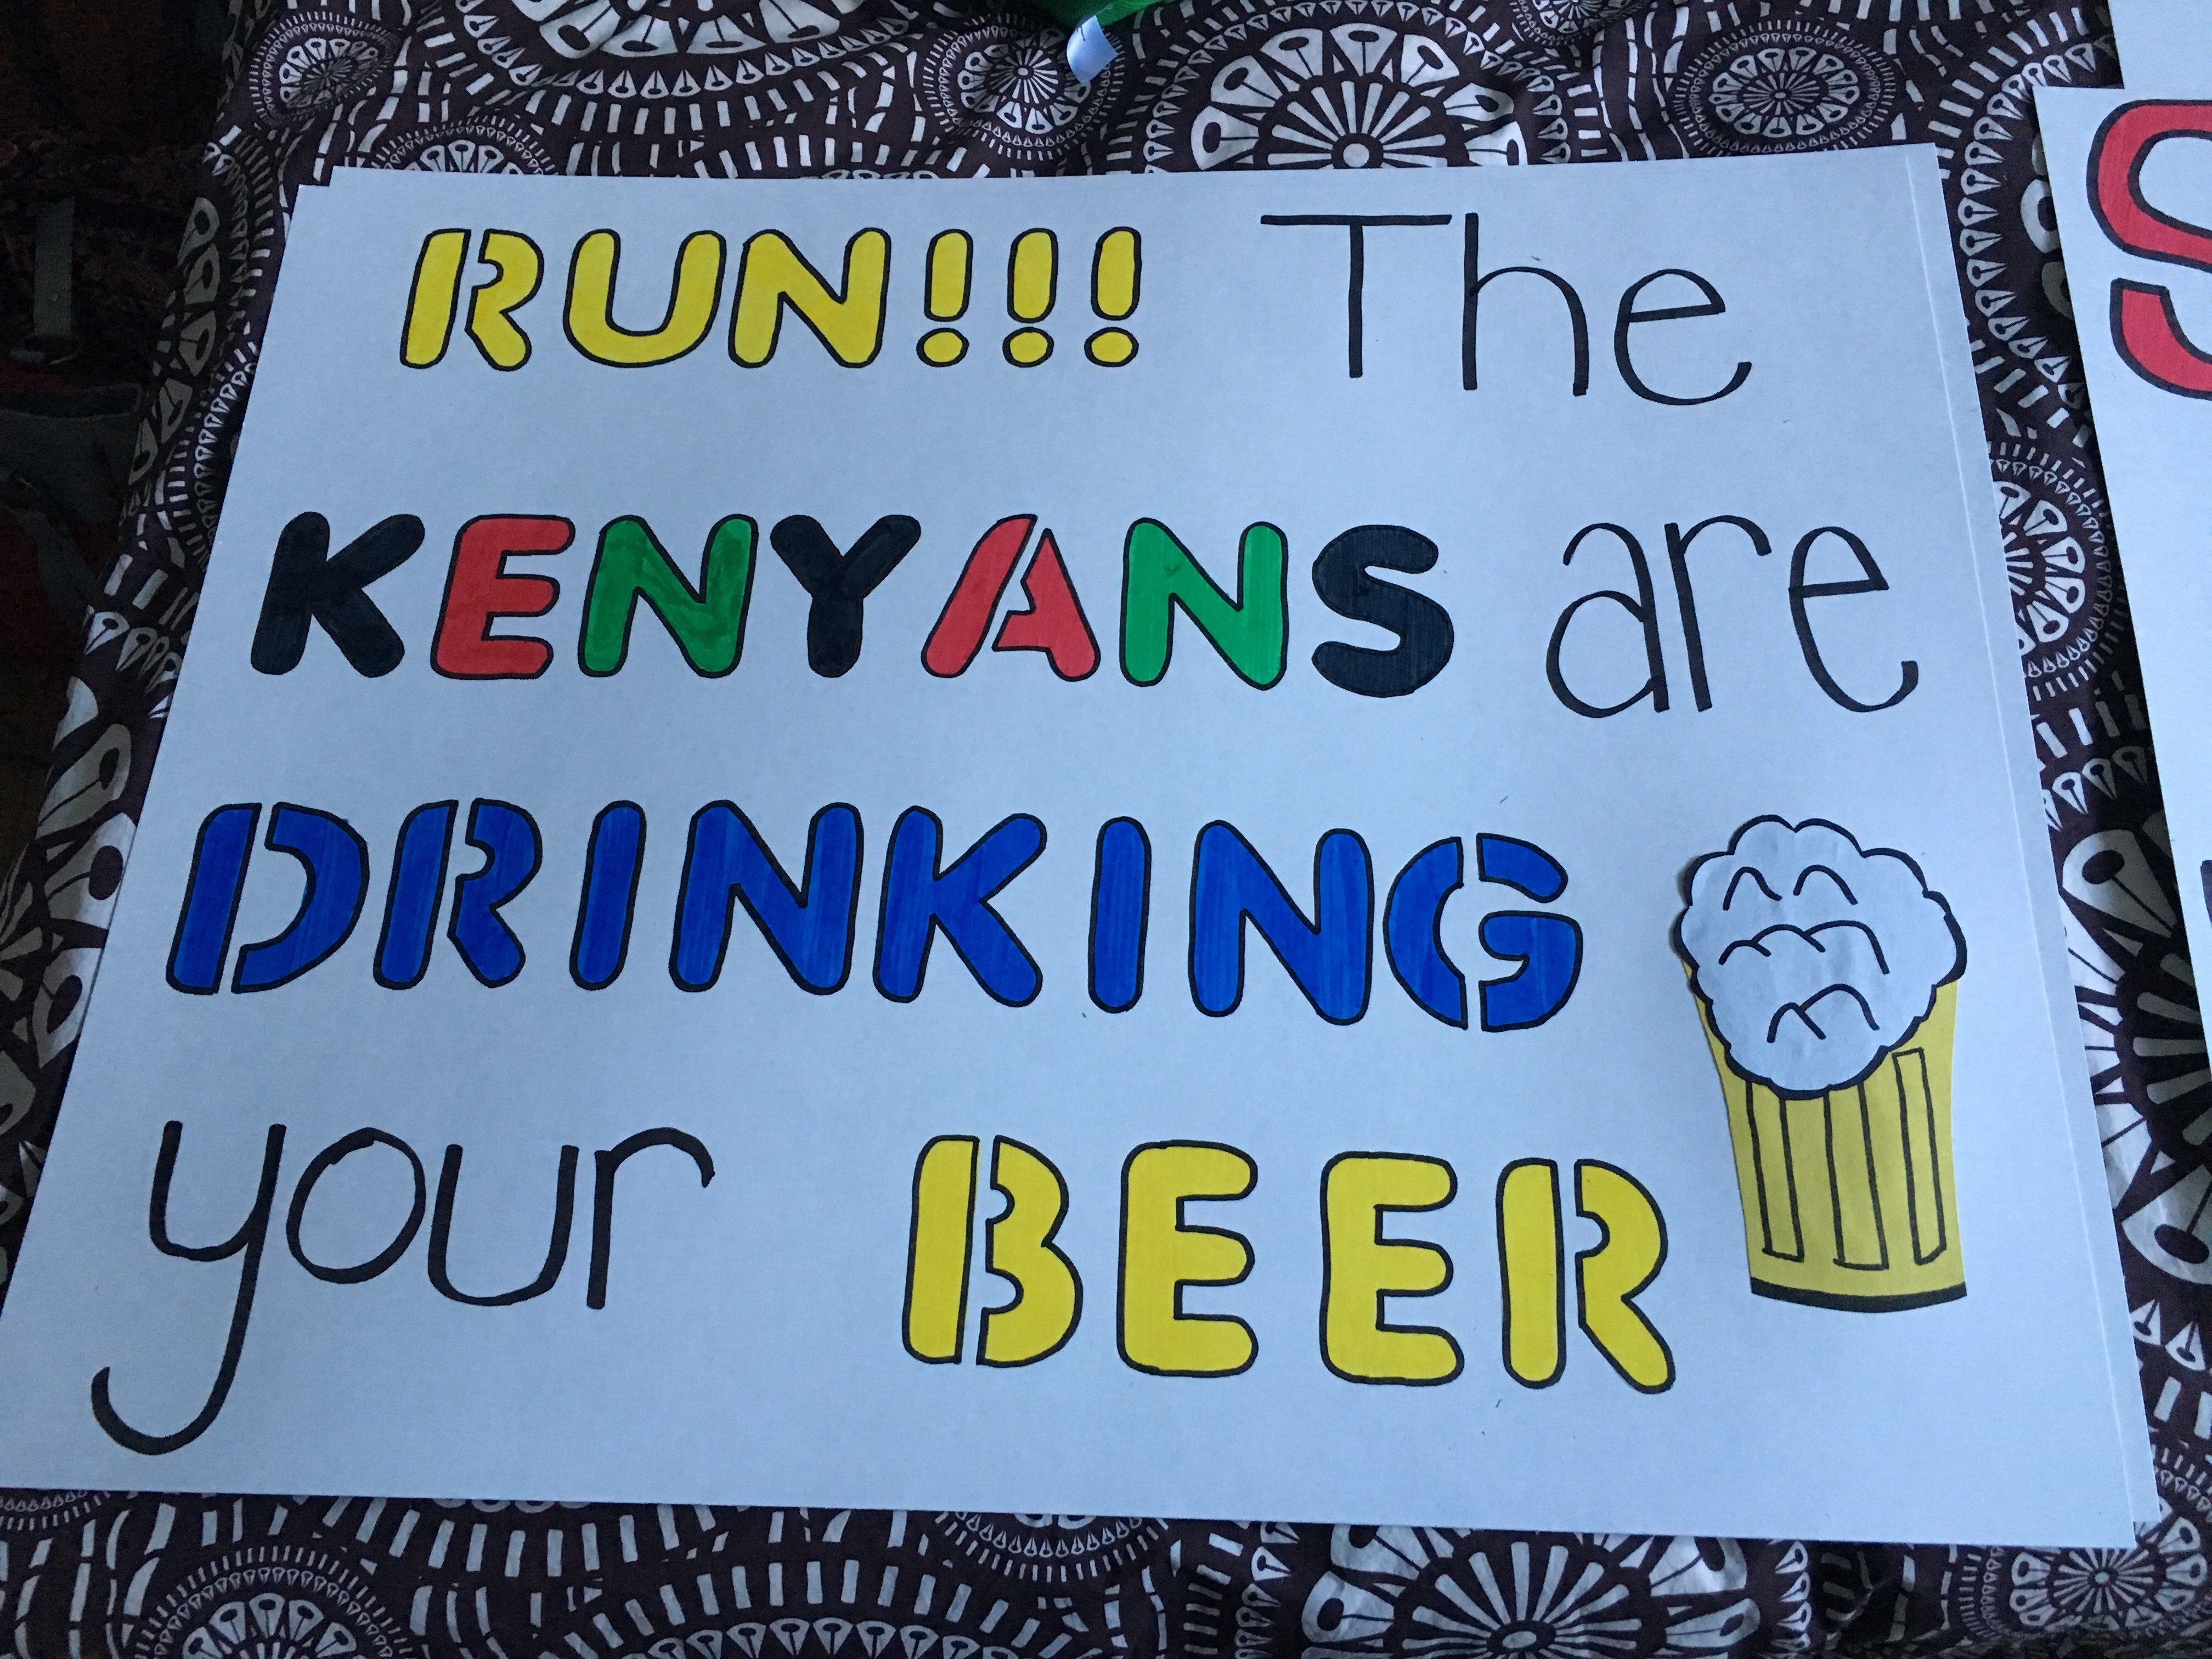 Kenyans are drinking your beer